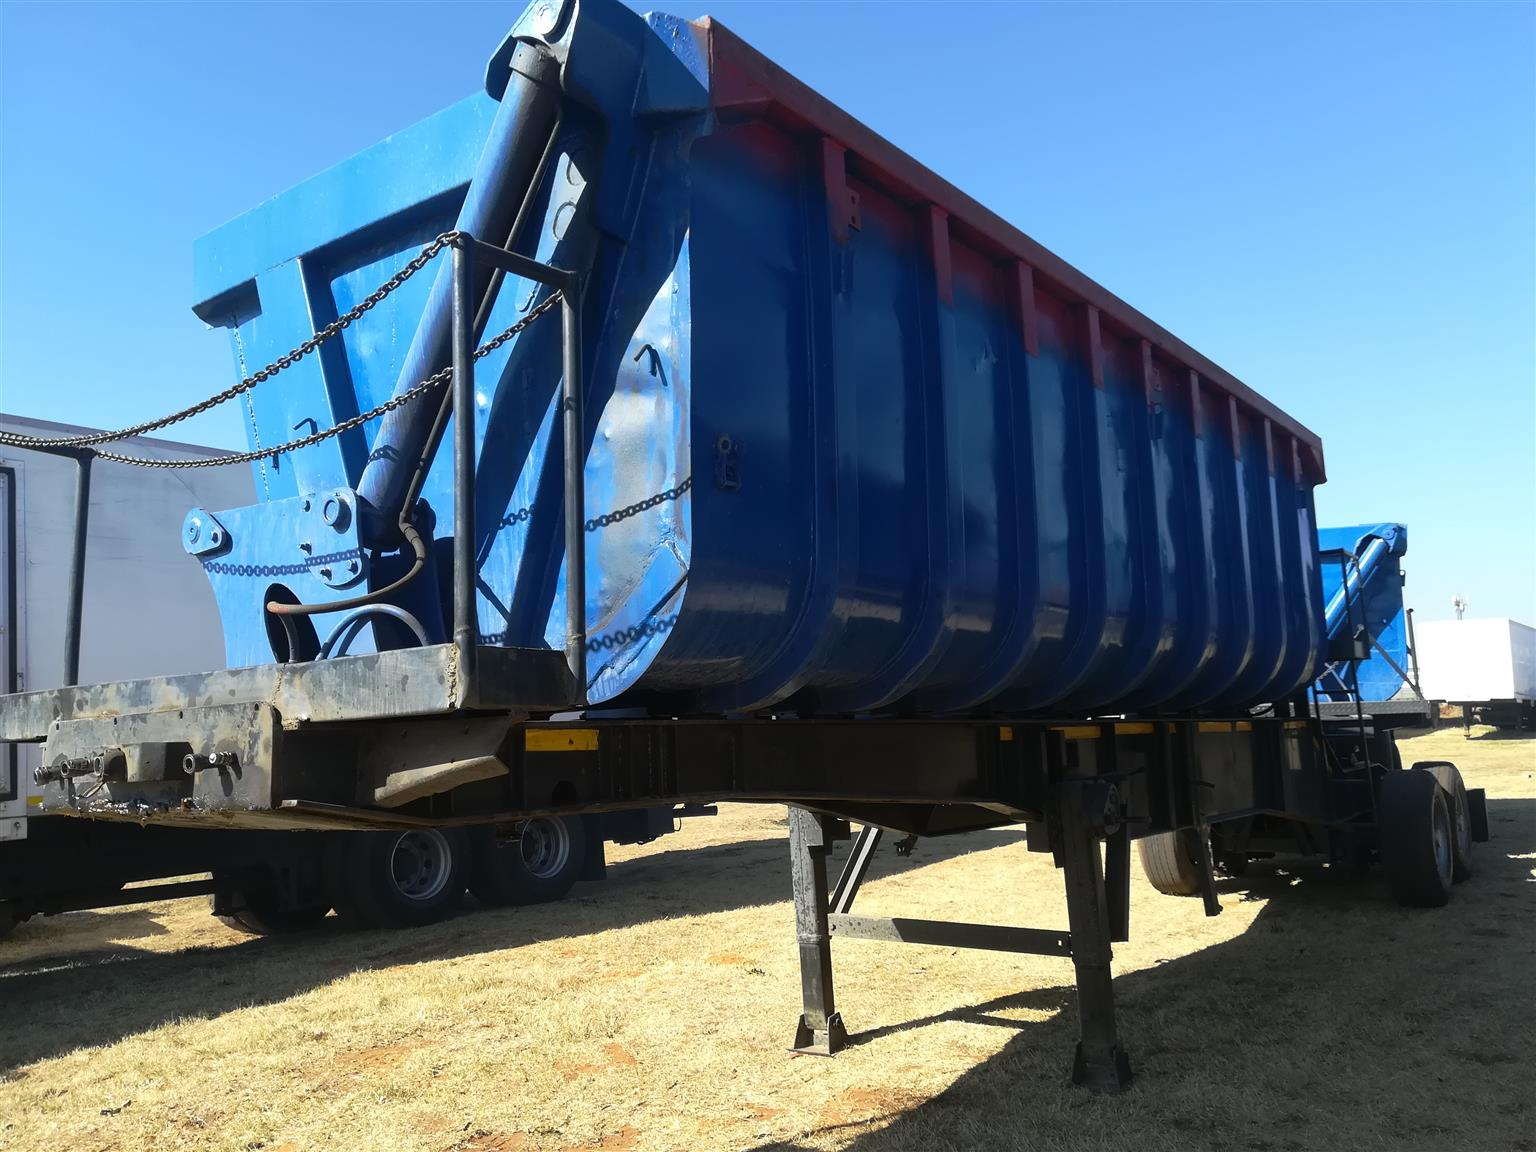 Start Your Own Trucking Business, 34 Ton Side Tippers, Become A Trucker, New Truckers Welcome, Northern Cape Province, South Africa